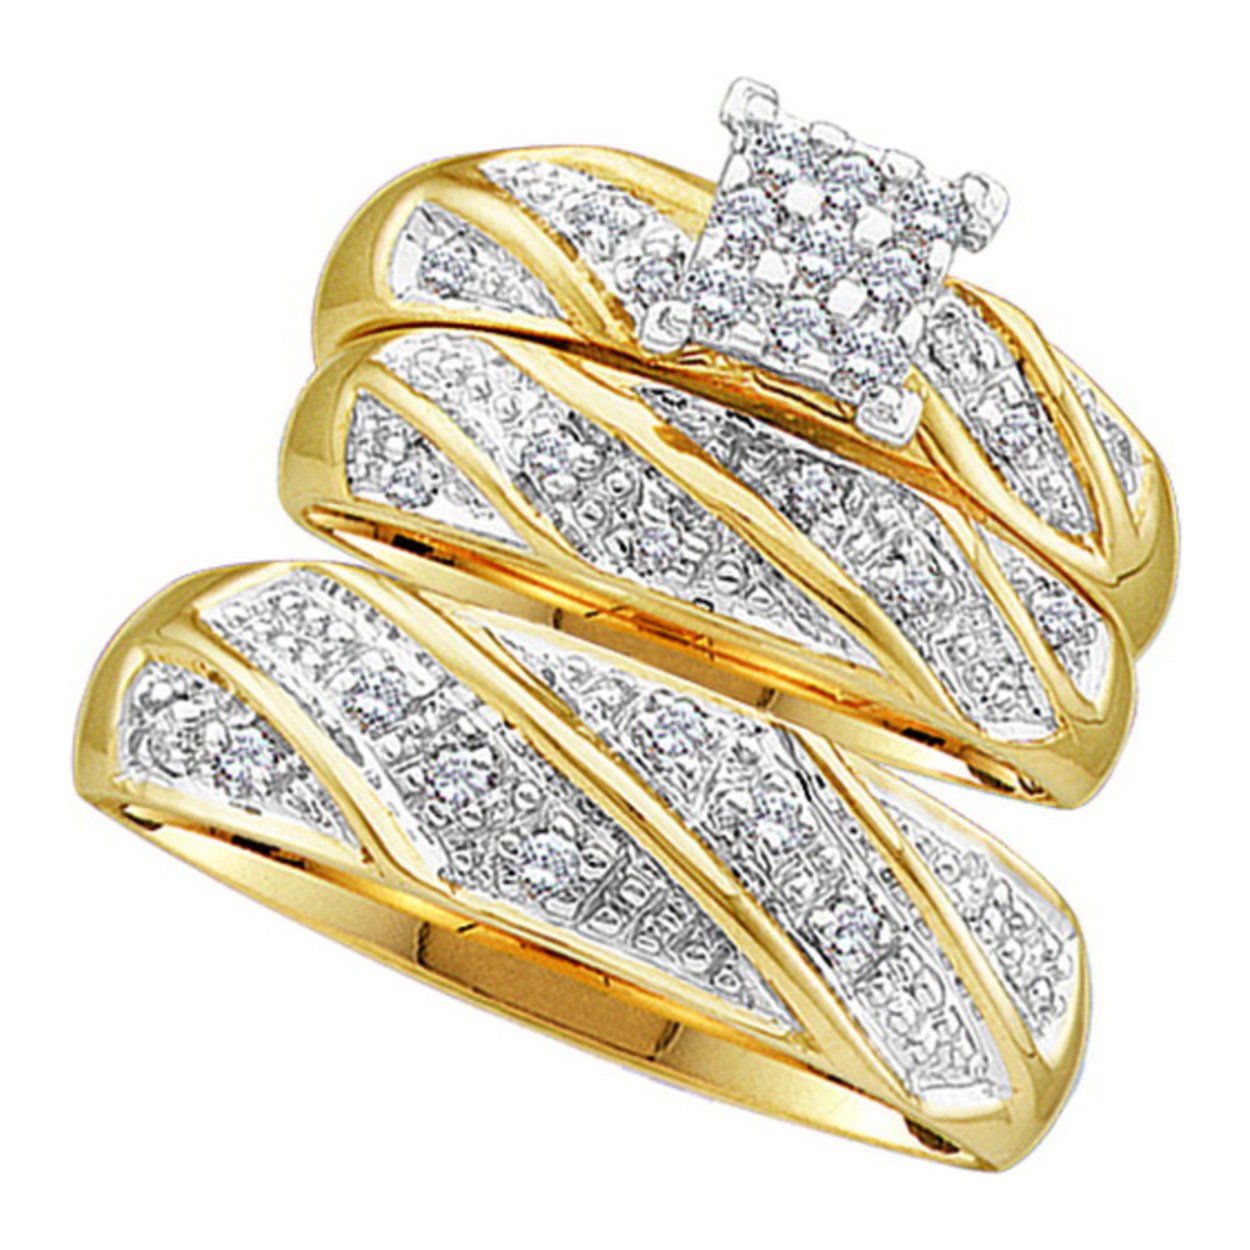 solid 10k yellow gold real diamond wedding ring sets his and hers trio 13 cttw - Real Diamond Wedding Rings